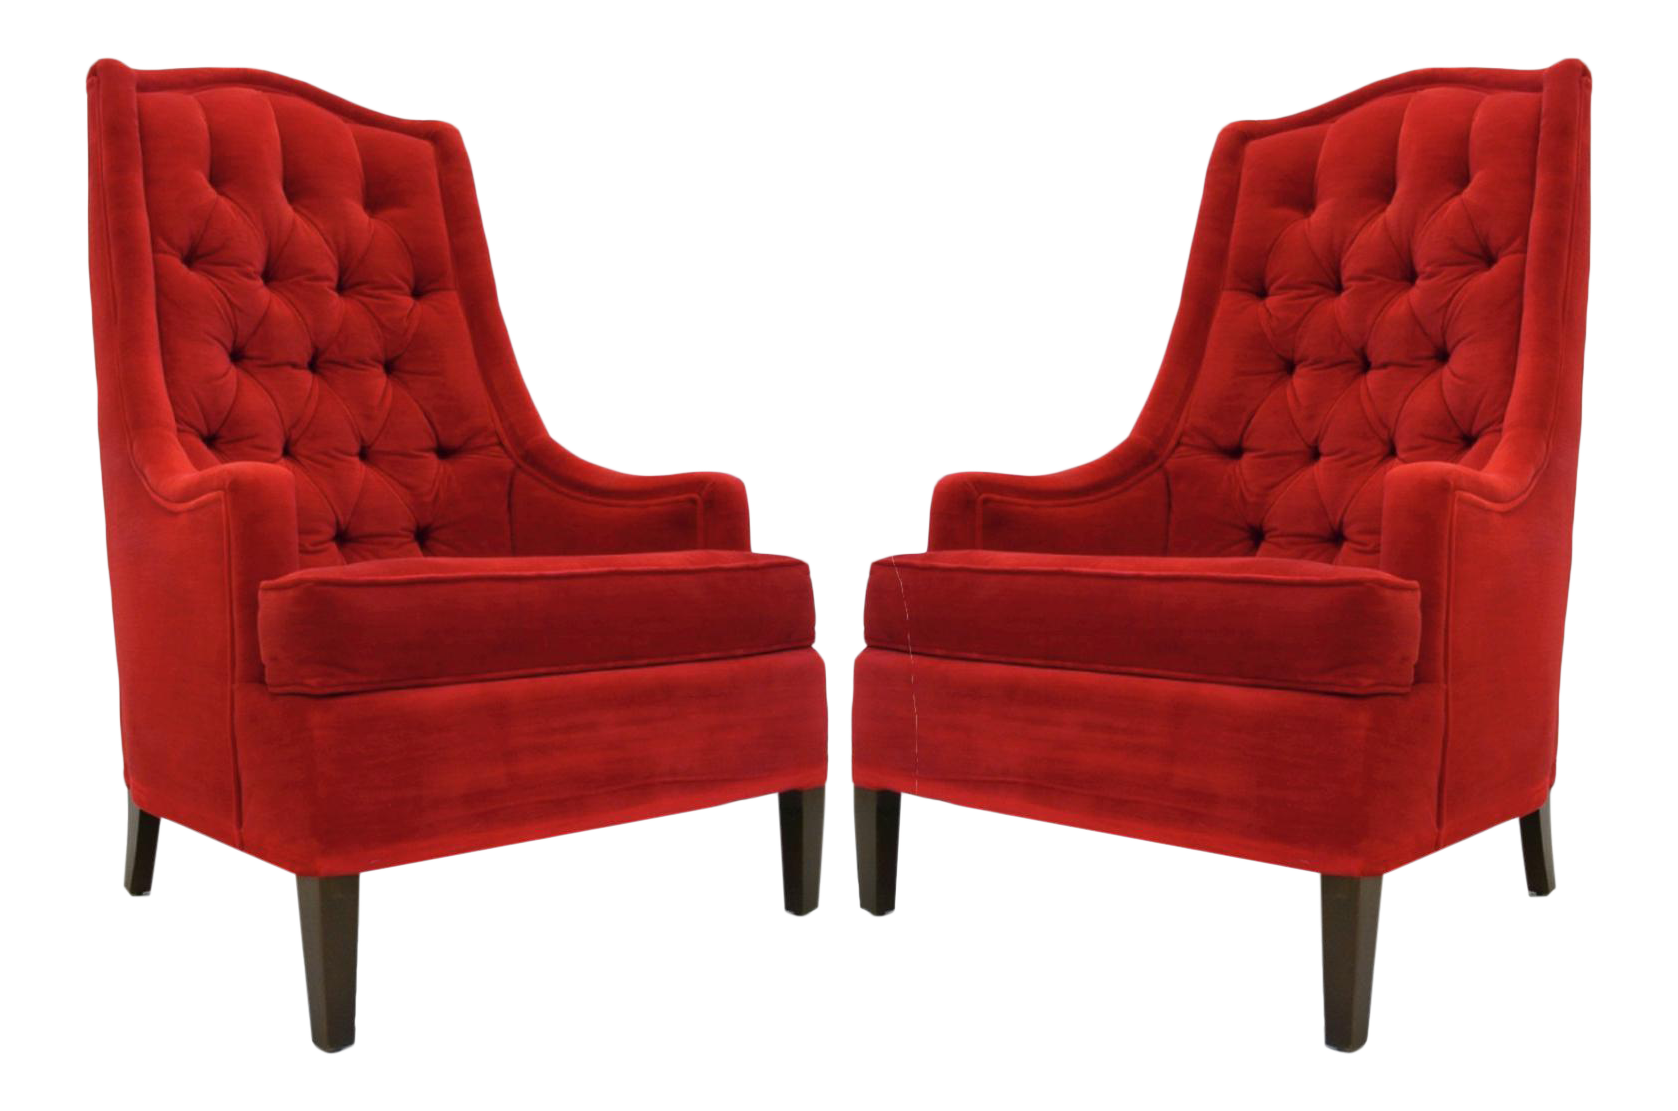 1940s Tufted Red Velvet Classic Hollywood Regency Chairs   A Pair